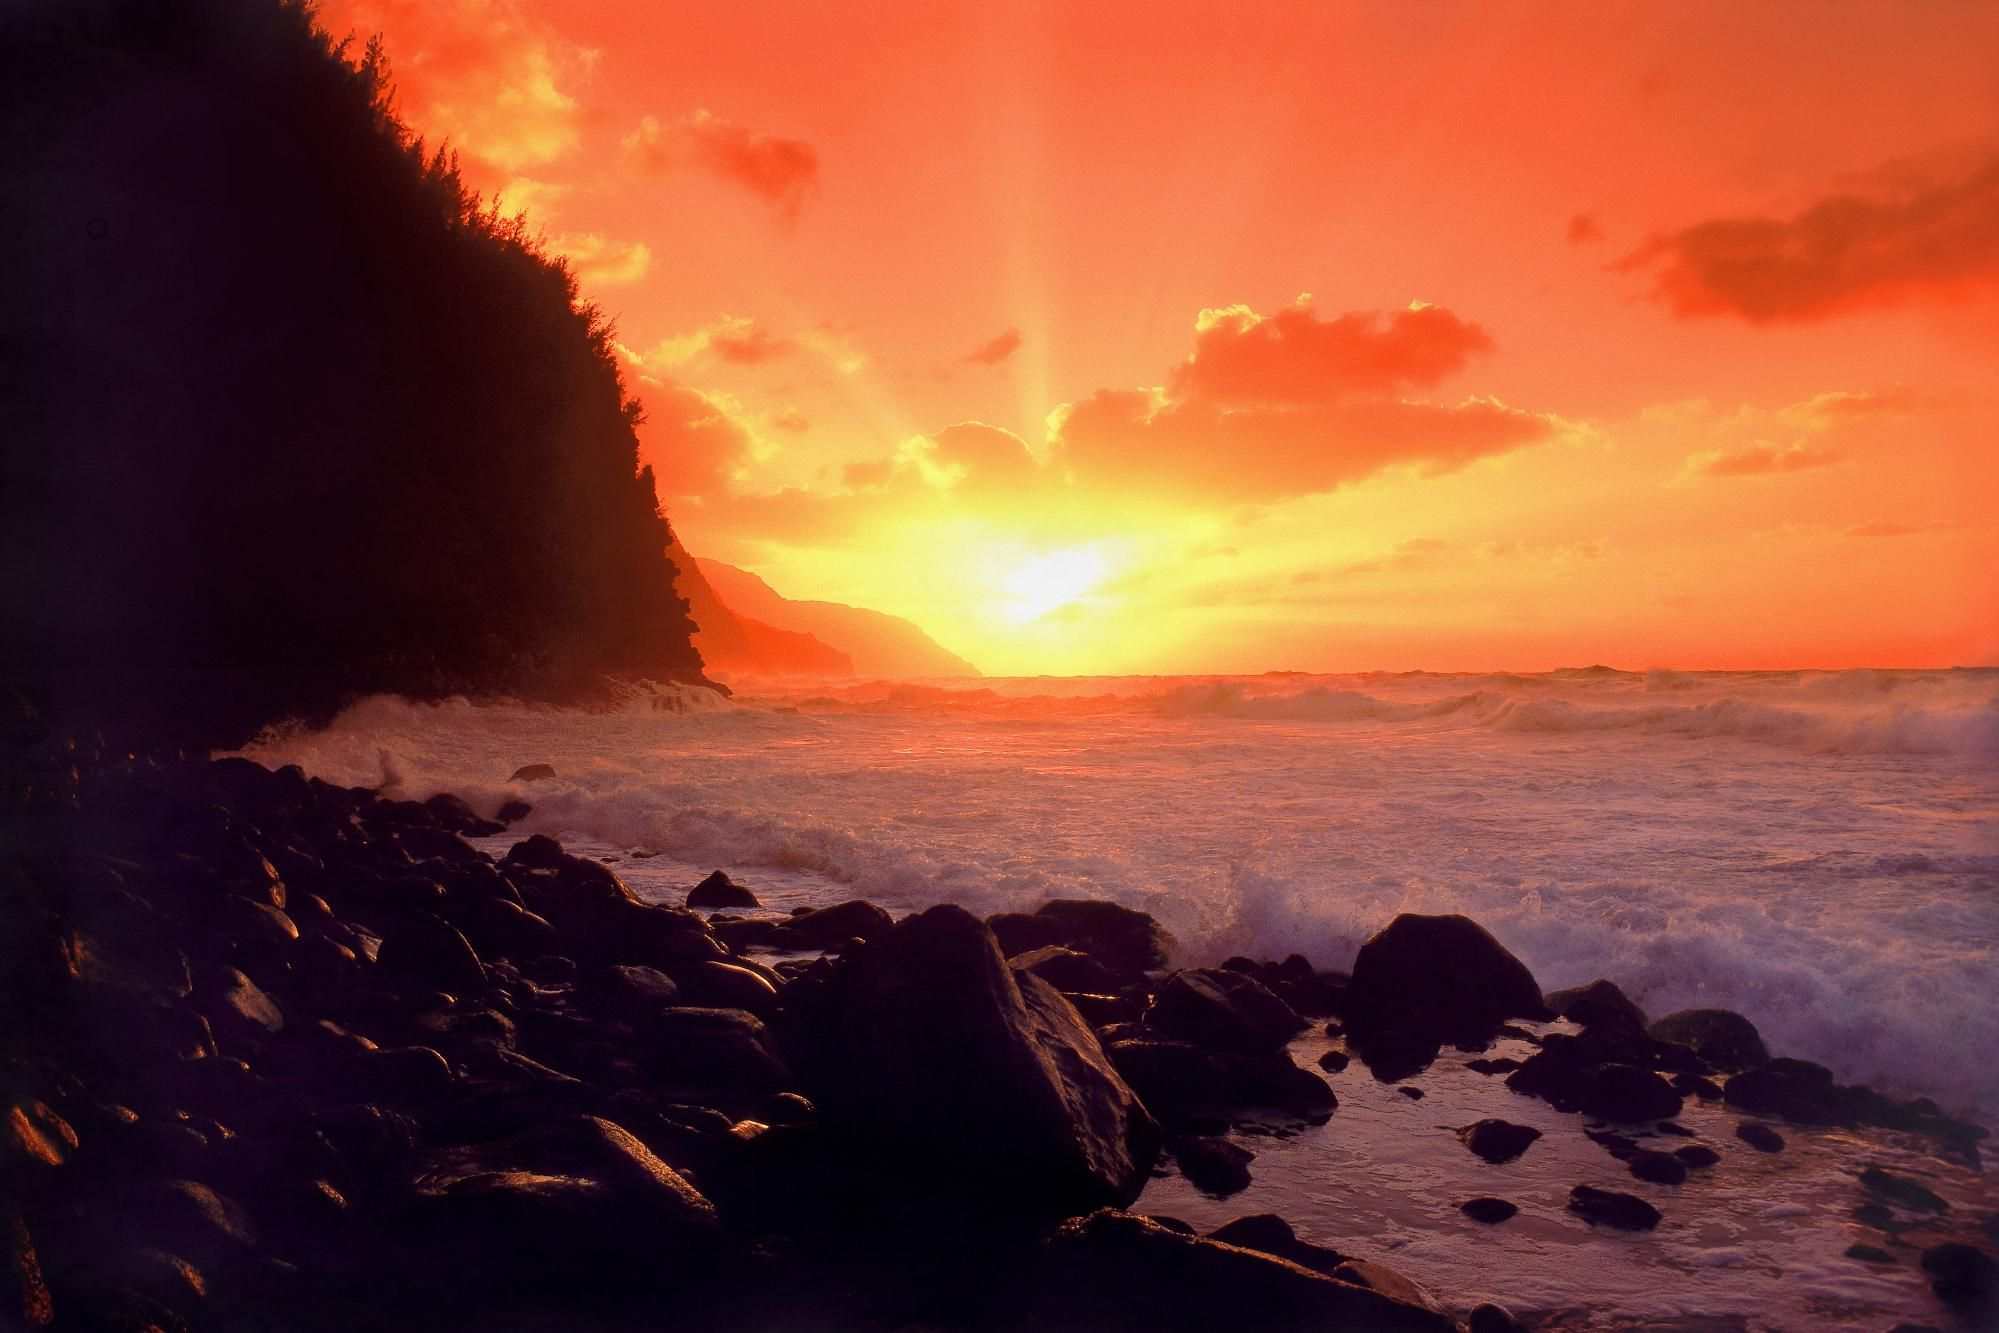 BeautifulSunsetWallpapers Sunset Pinterest Beautiful Sunset - 12 destinations to see the most beautiful sunsets ever